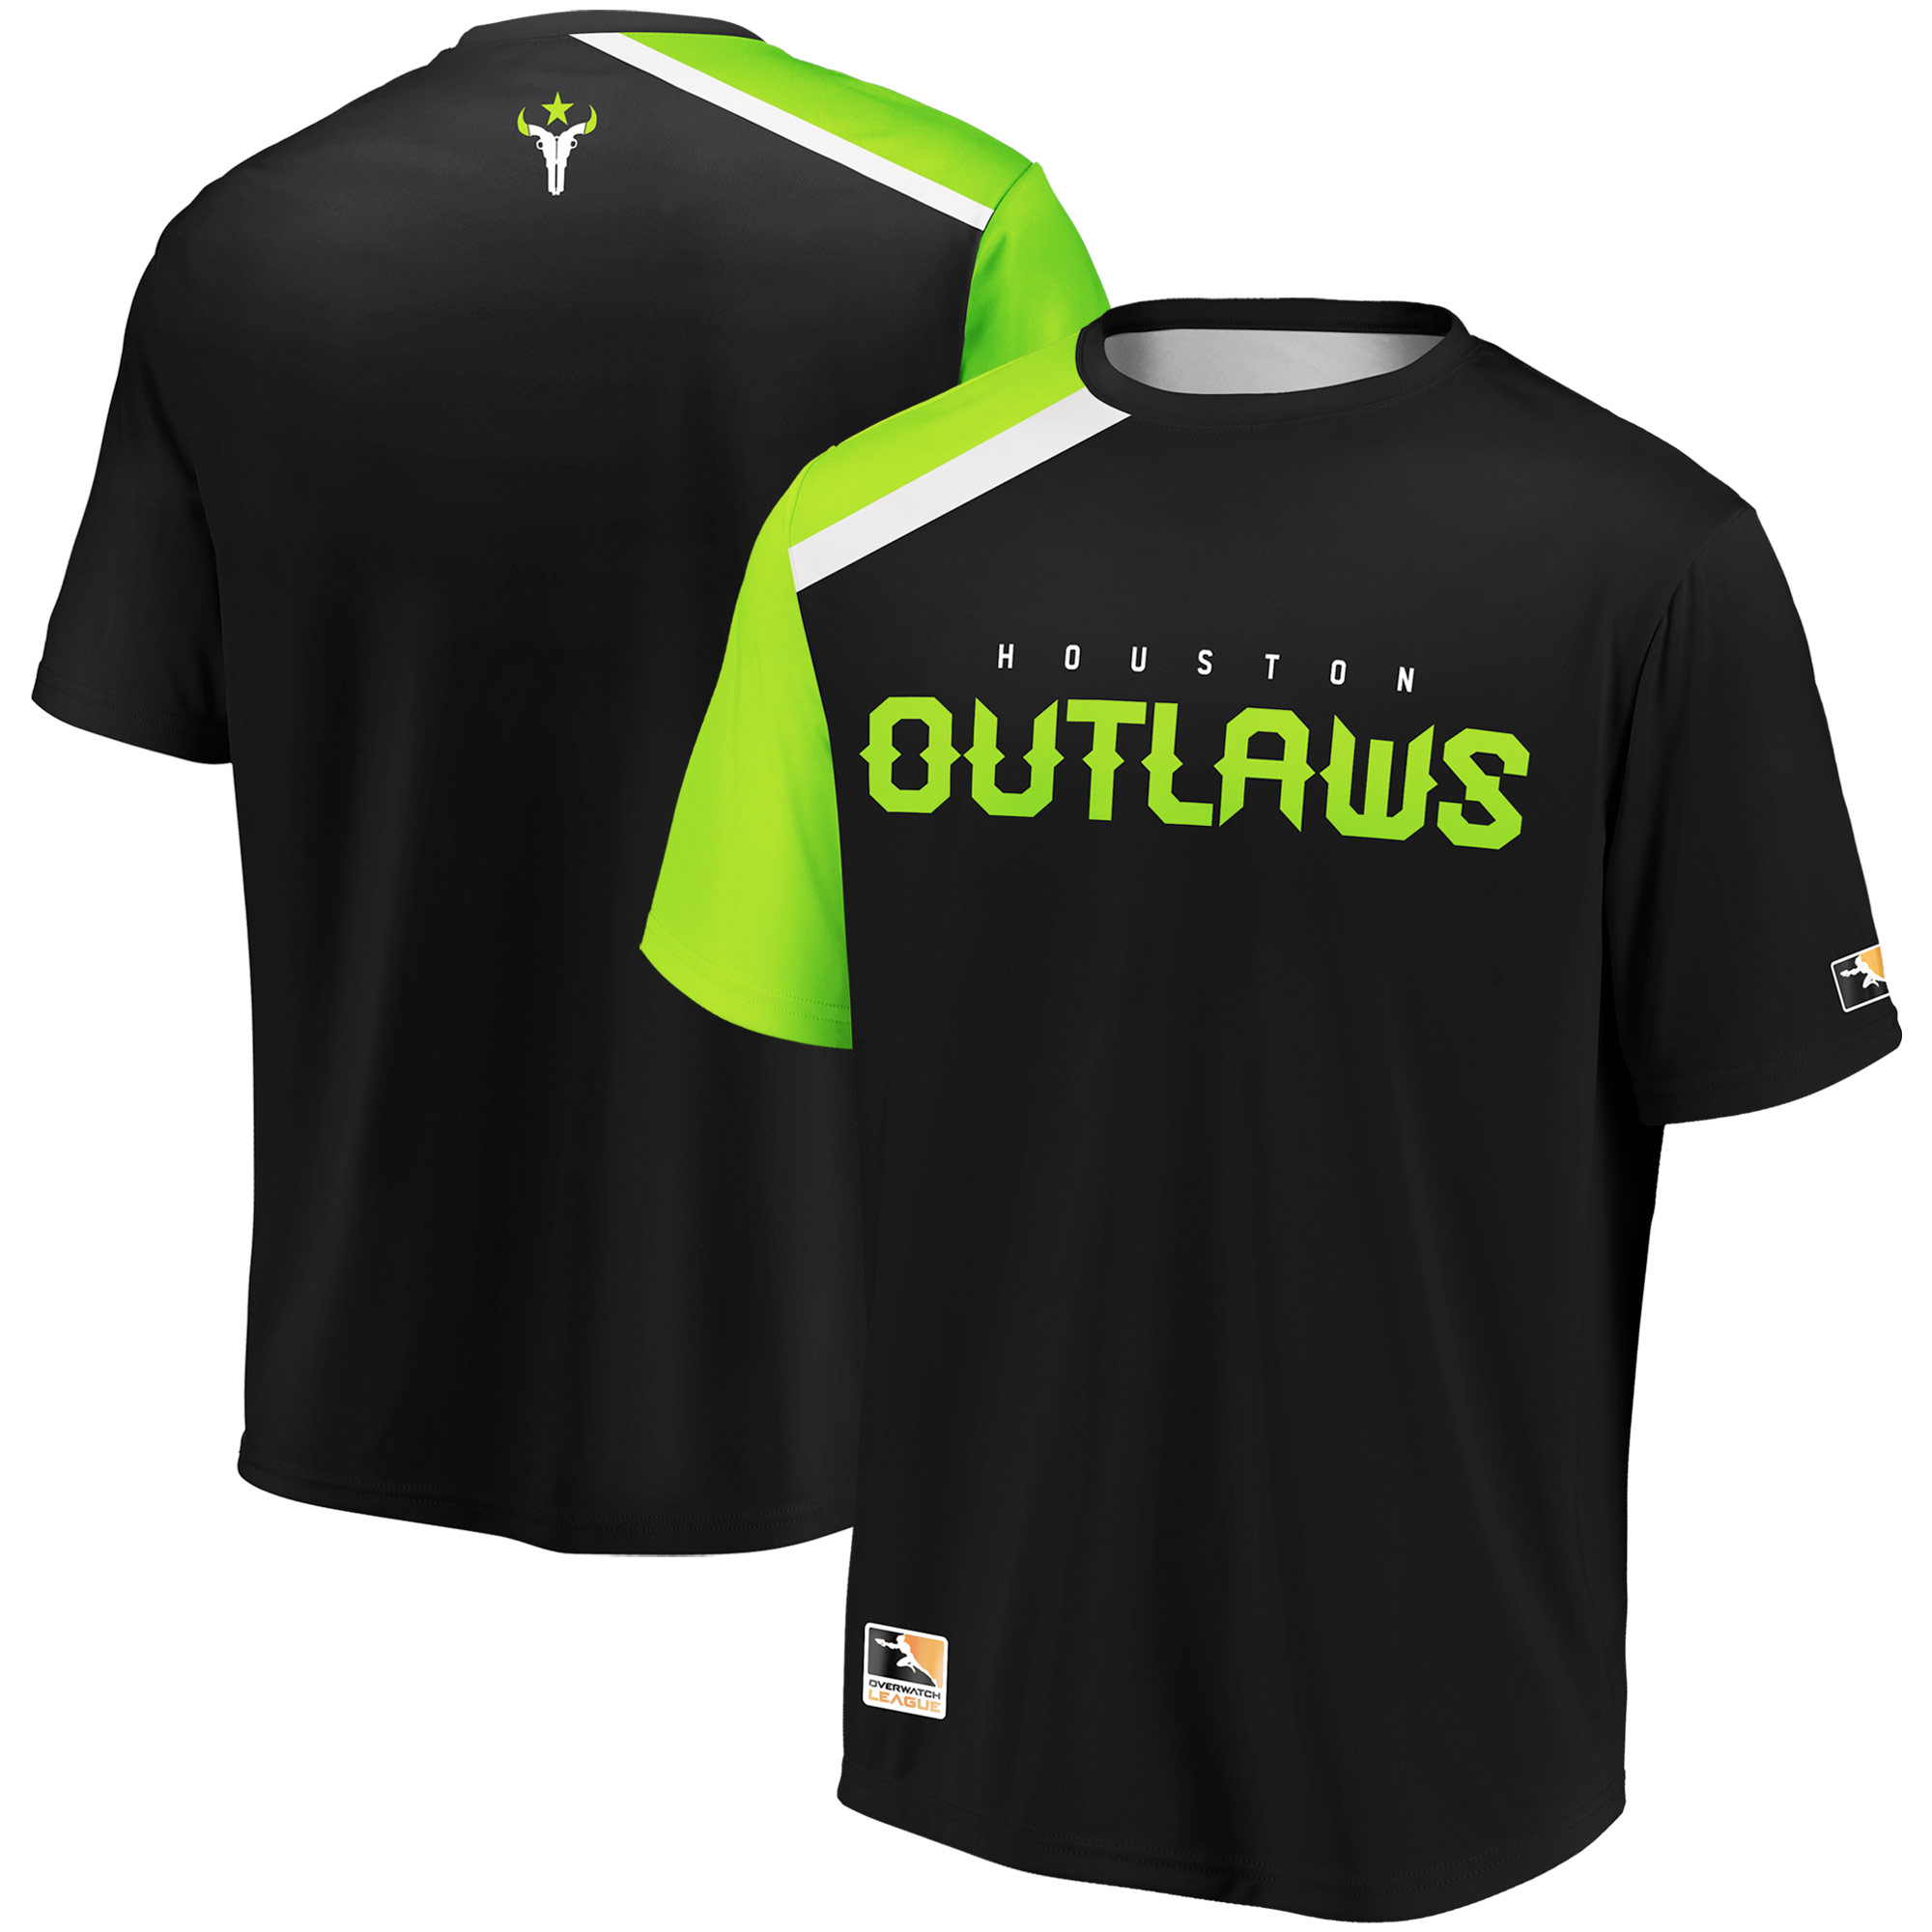 Houston Outlaws Overwatch League Replica Home Jersey - Black